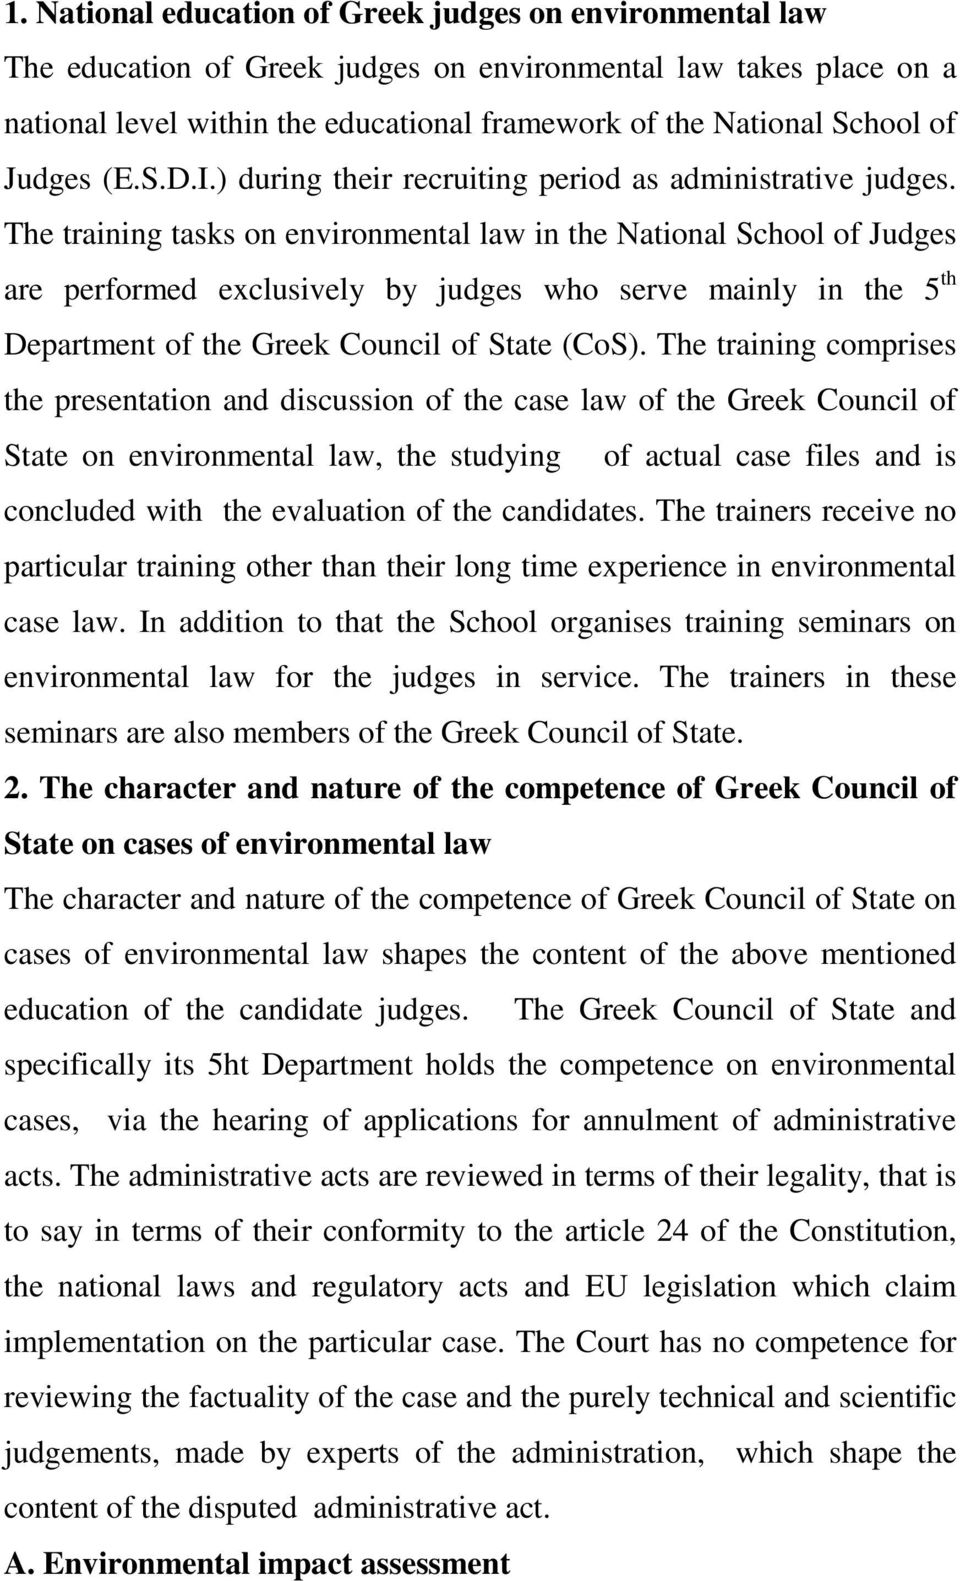 The training tasks on environmental law in the National School of Judges are performed exclusively by judges who serve mainly in the 5 th Department of the Greek Council of State (CoS).